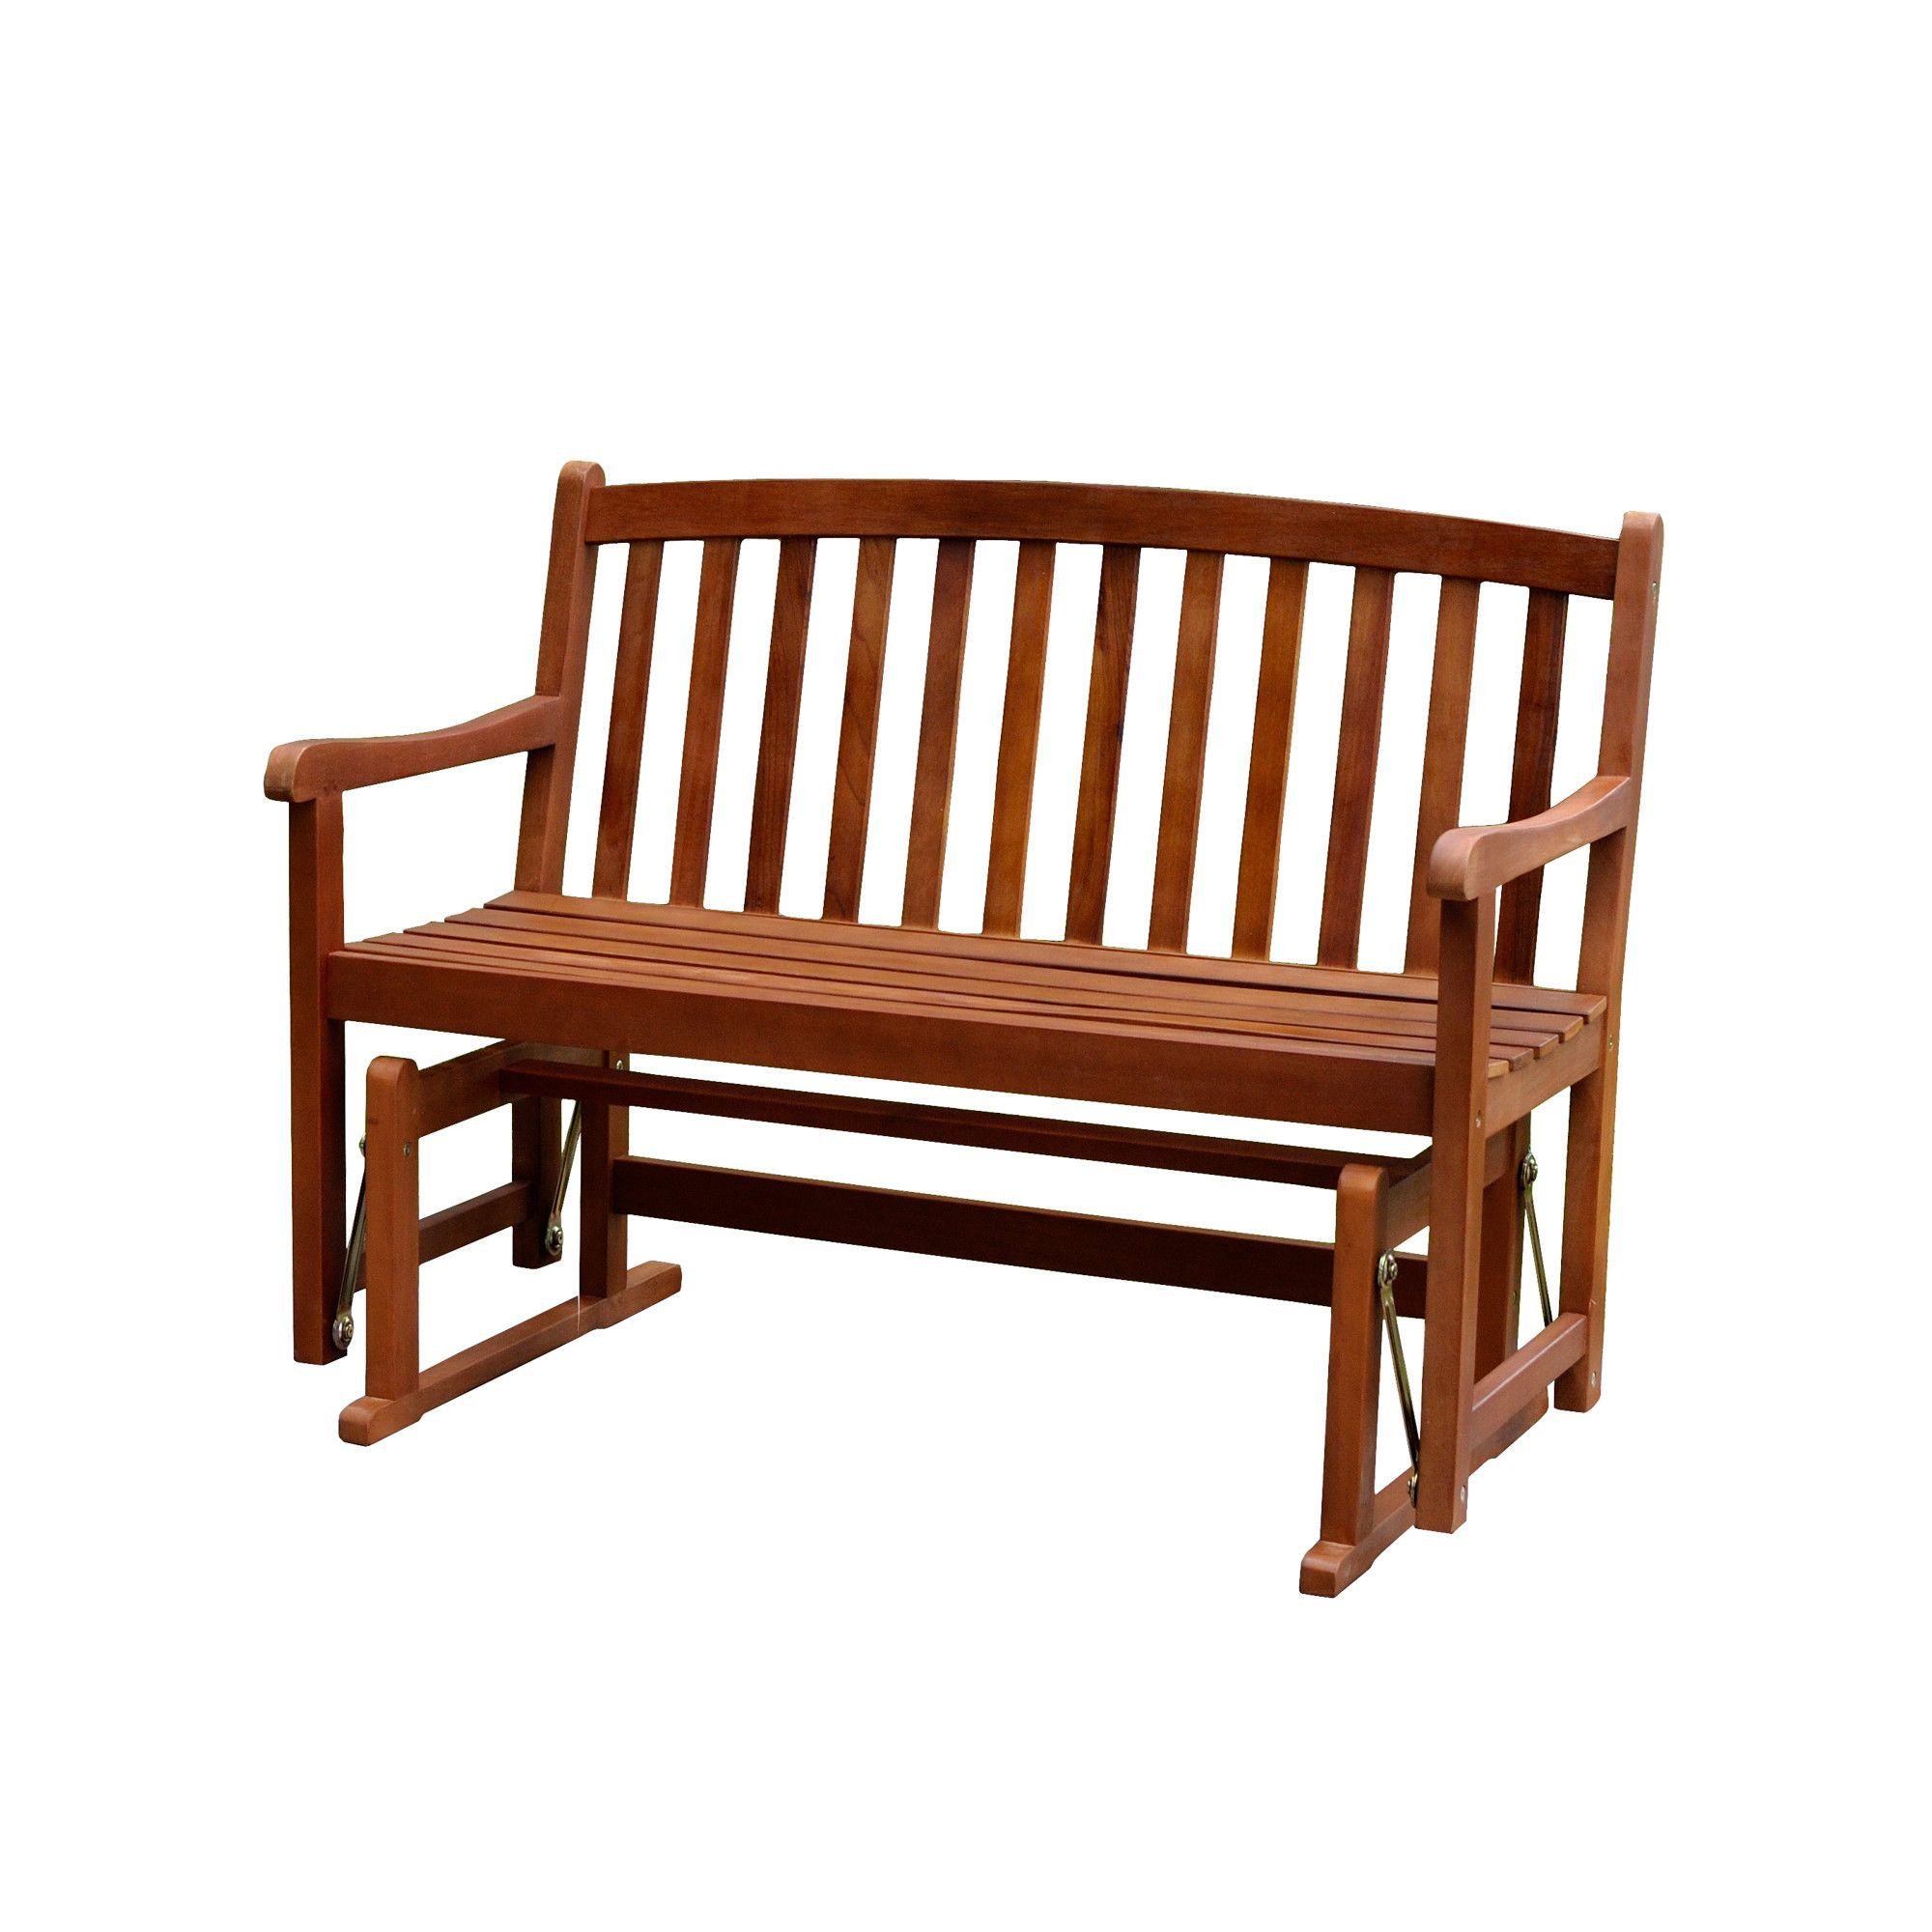 Wayfair Outdoor Wooden Benches Intended For Pettit Steel Garden Benches (View 20 of 25)